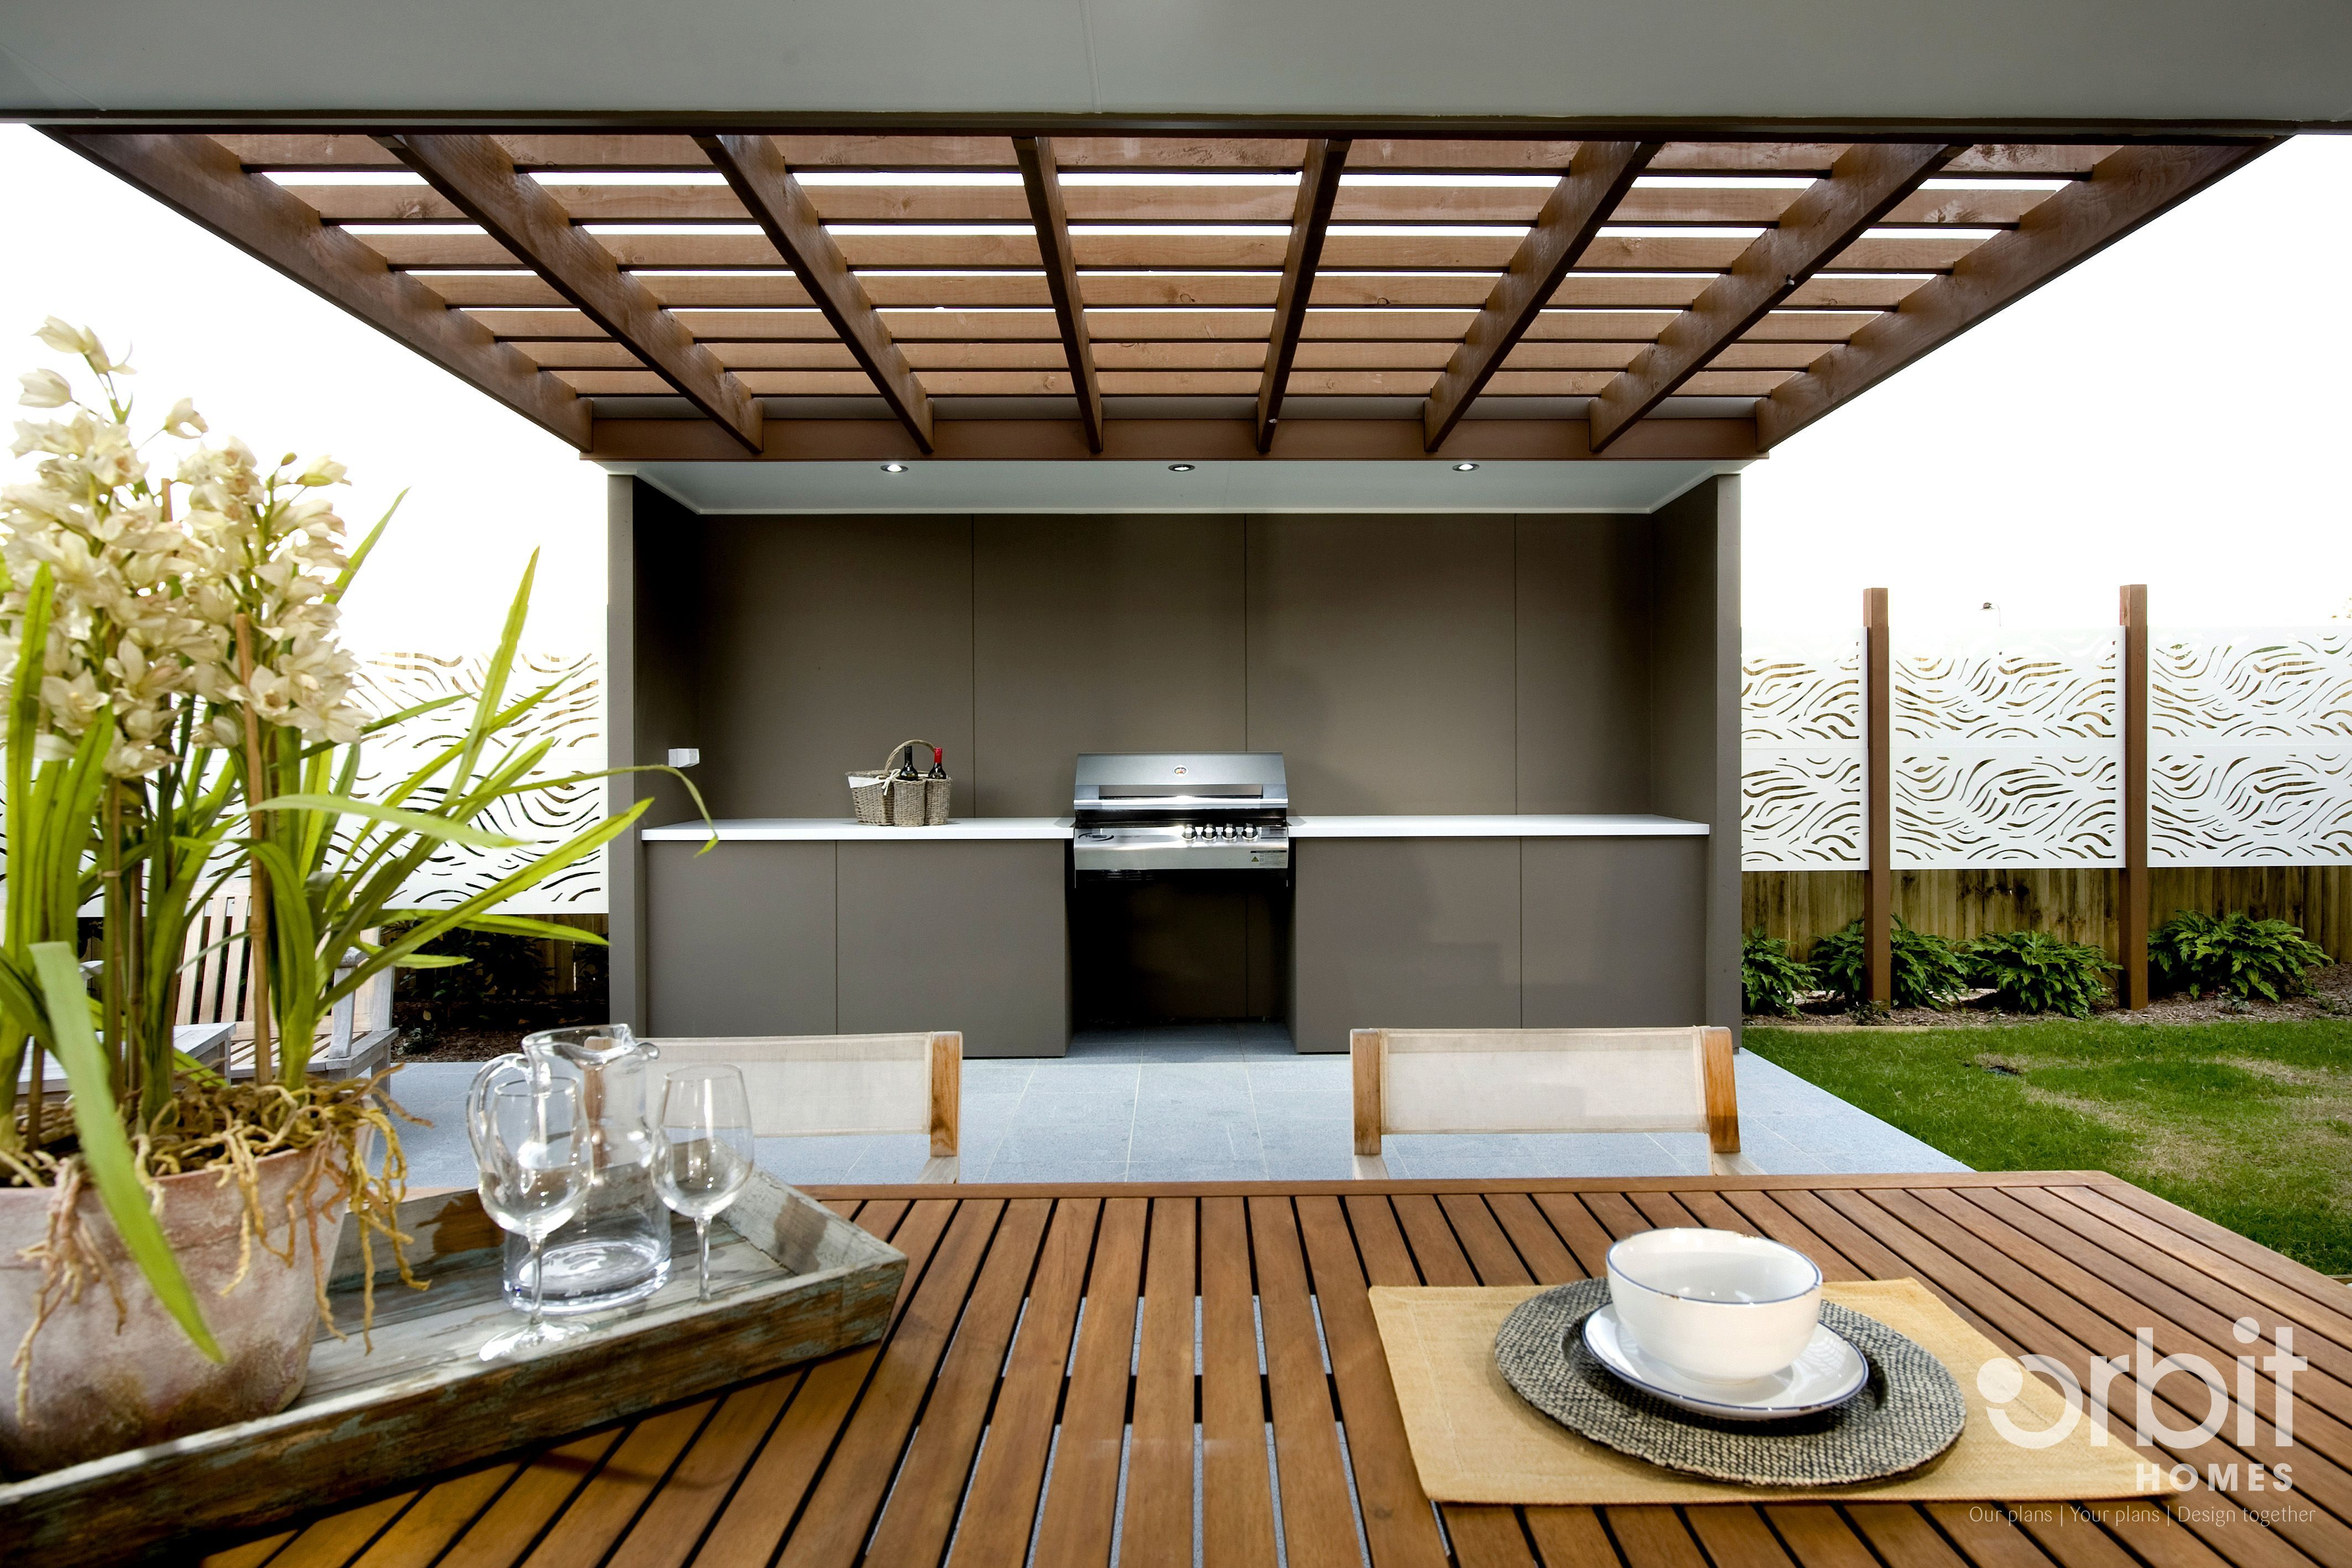 innovative outdoor living room melbourne allweather shelters | Outdoor living with built in BBQ and outdoor kitchen ...